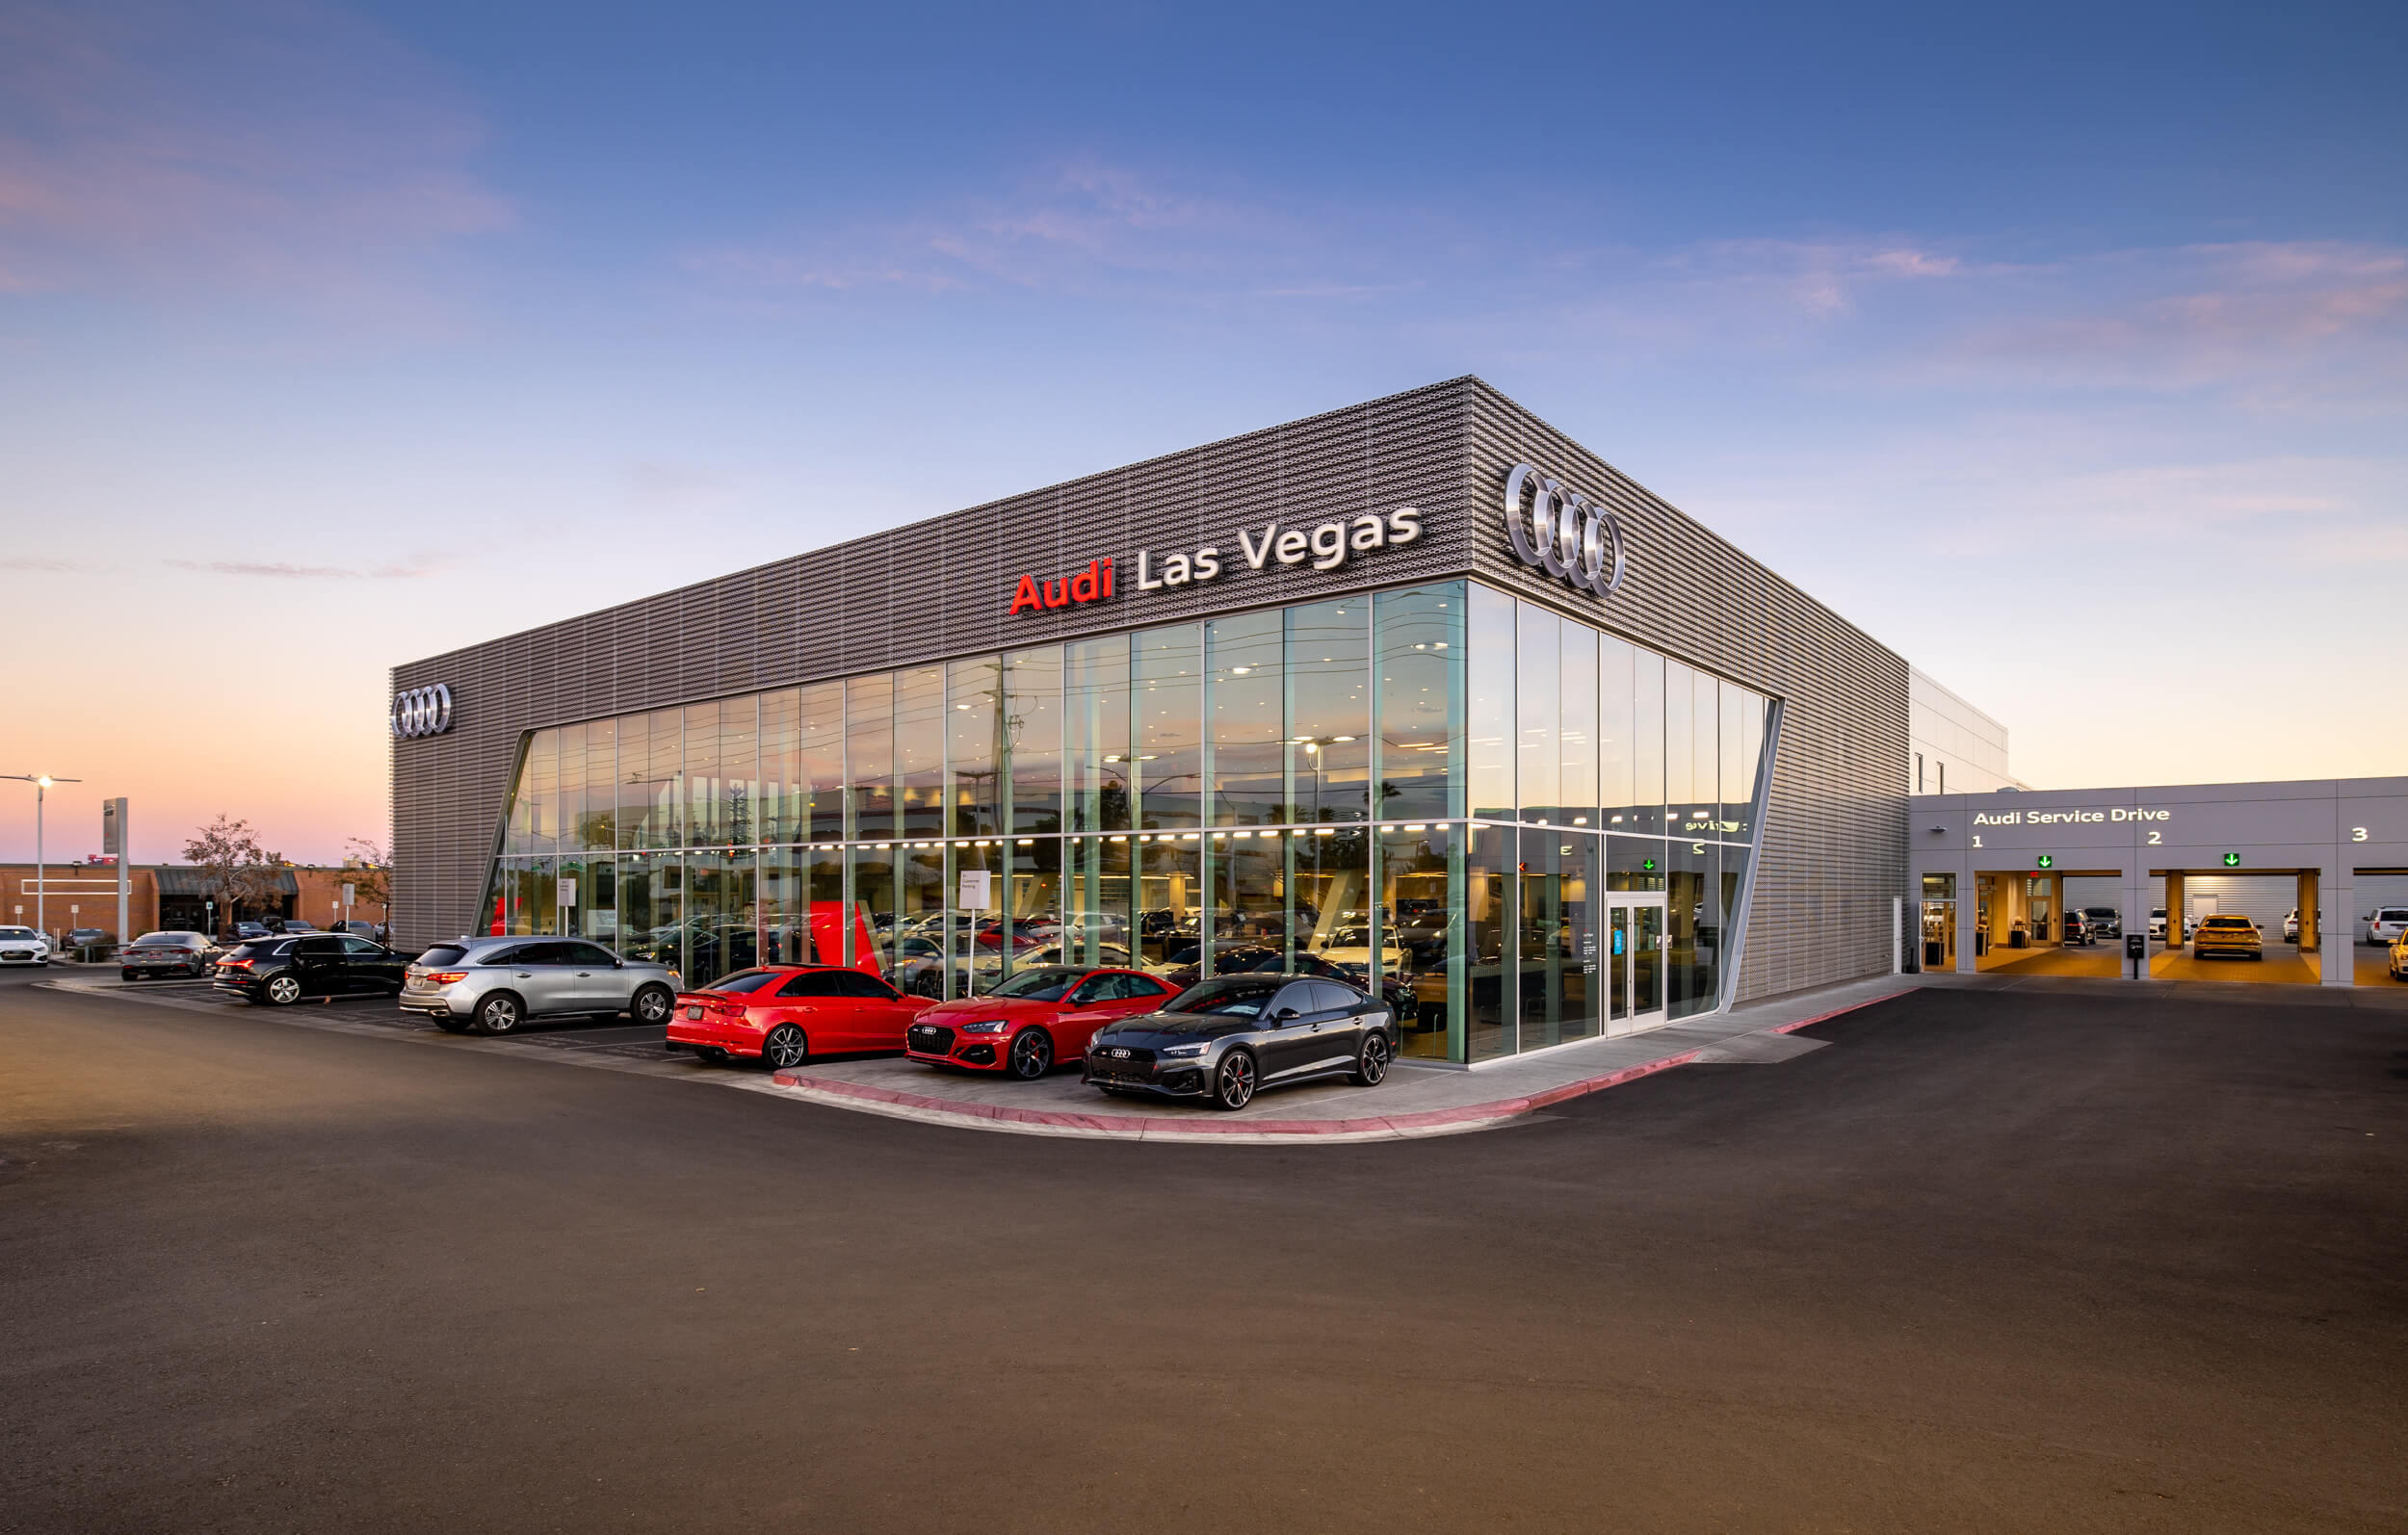 The yamaha official website is one of the best places to begin when you're looking for a yamaha dealer near you. Audi Las Vegas Your Premier Las Vegas Audi Dealership